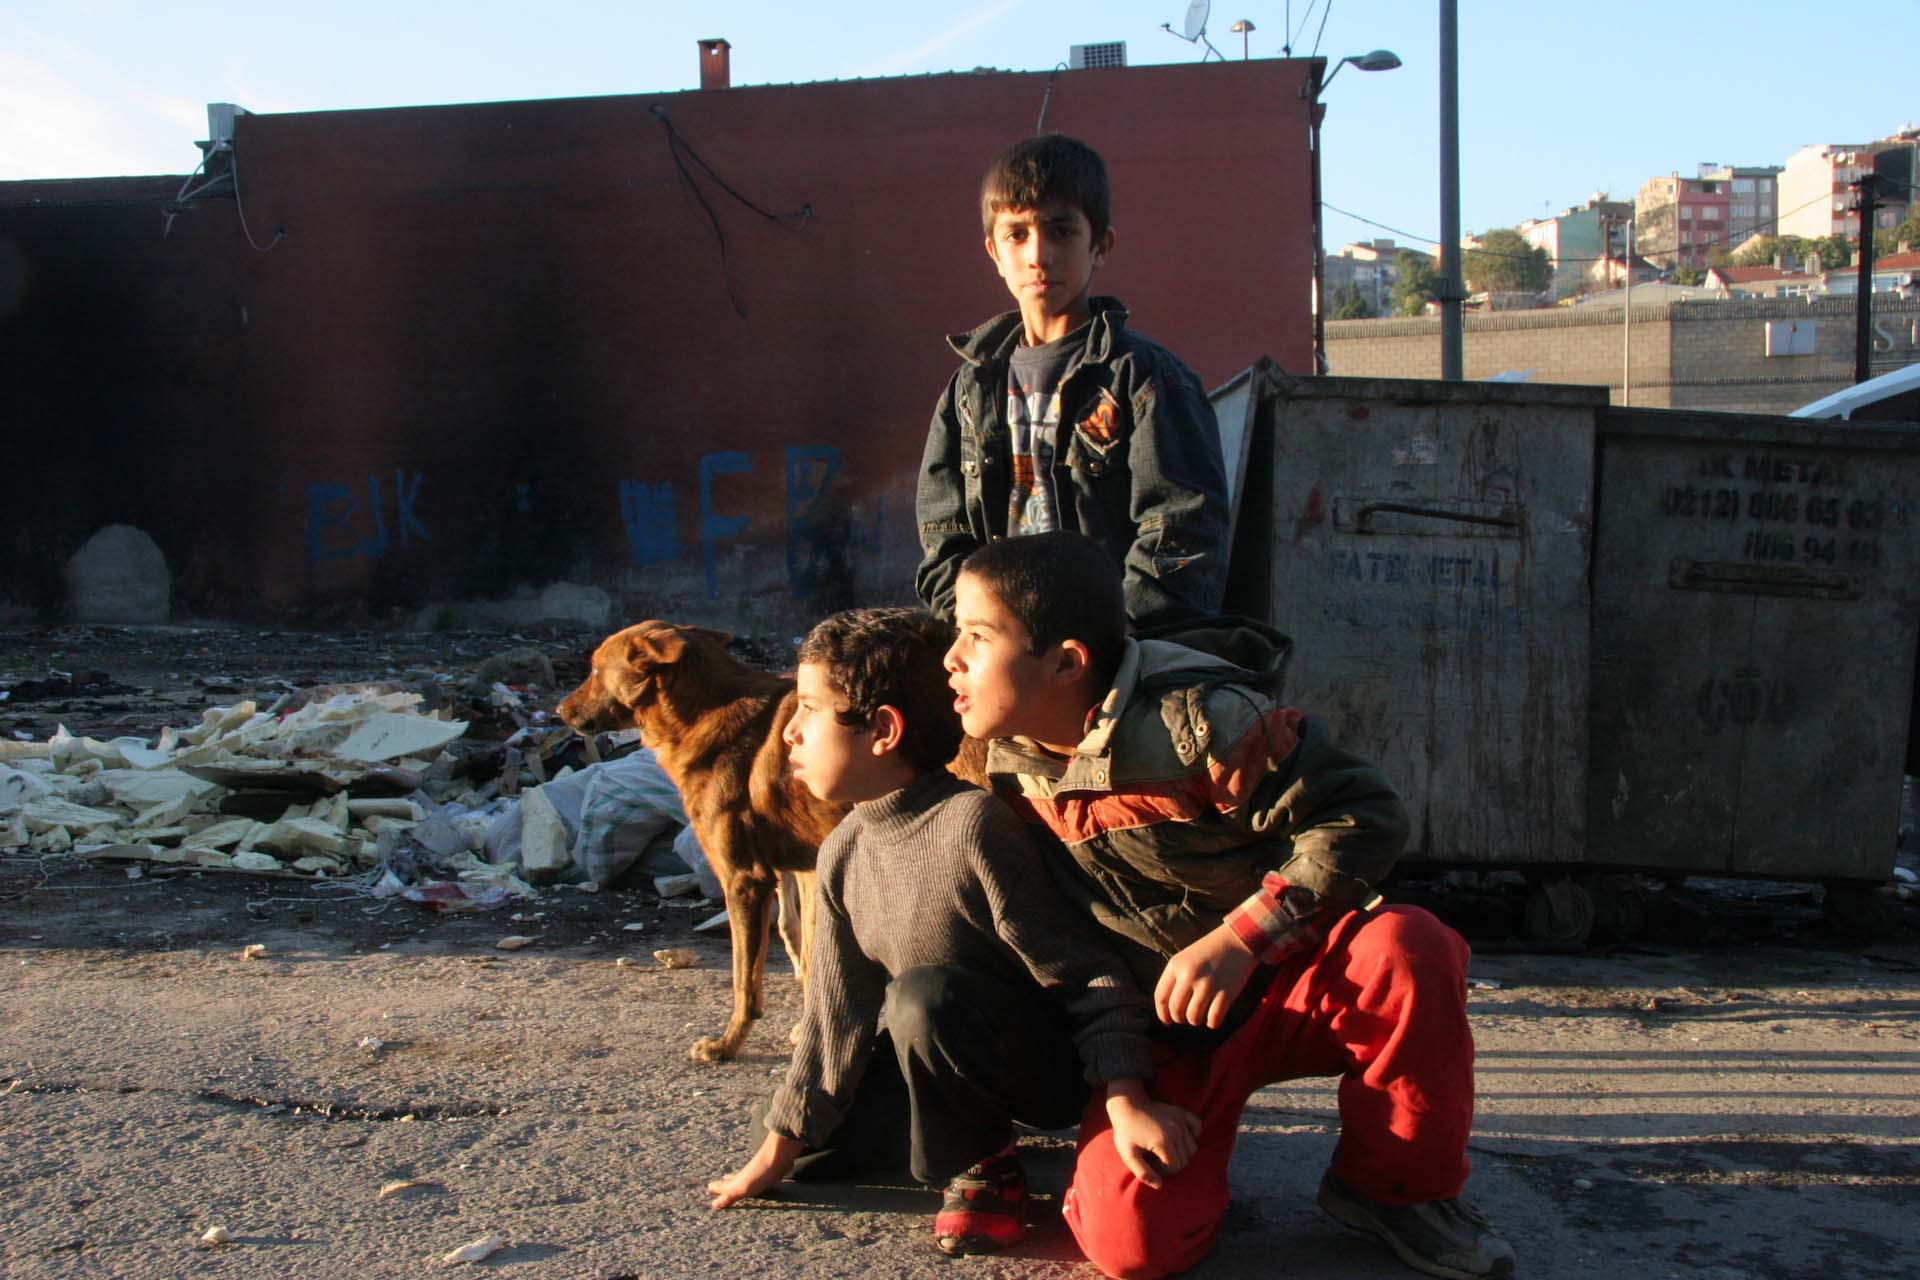 Boys are playing with a street dog in Tarlabaşı